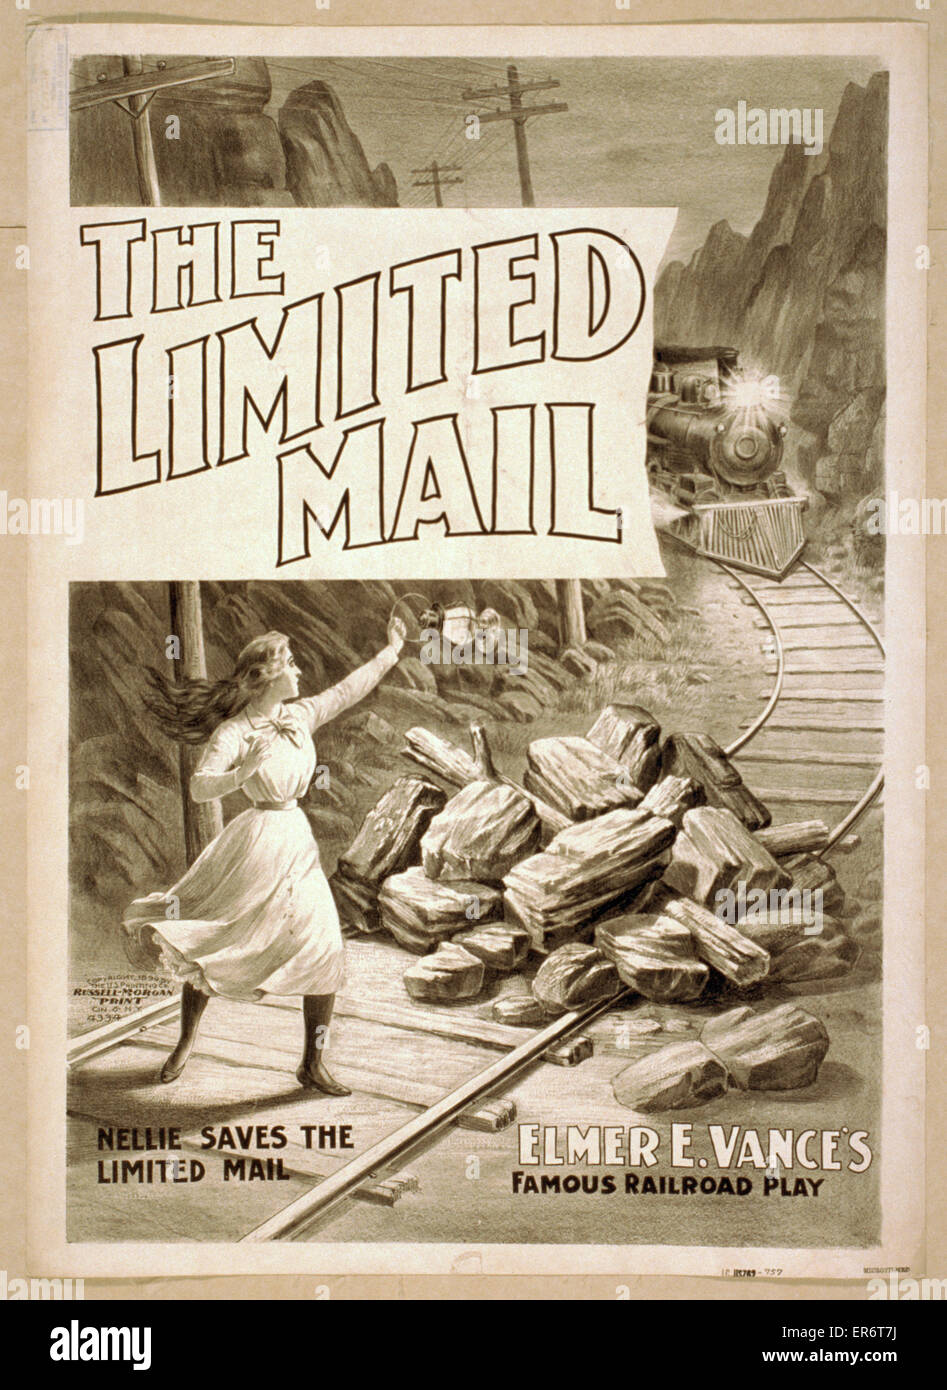 The limited mail Elmer E. Vance's famous railroad play. Date c1899. - Stock Image